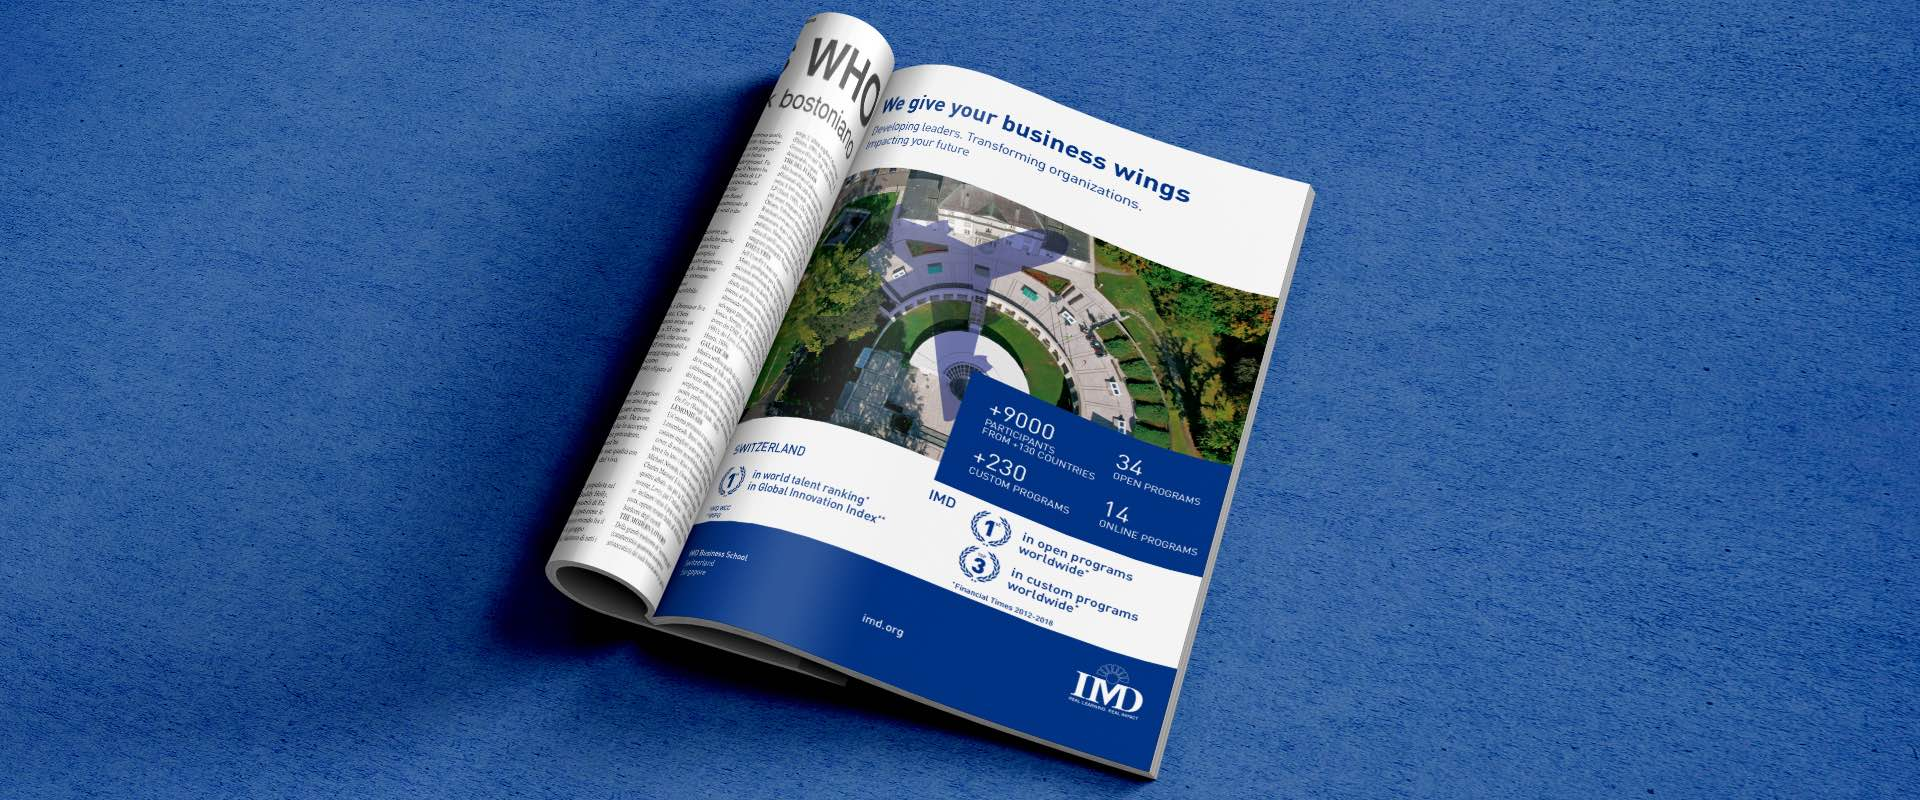 IMD advertising campaign on Brussels Airlines' magazine